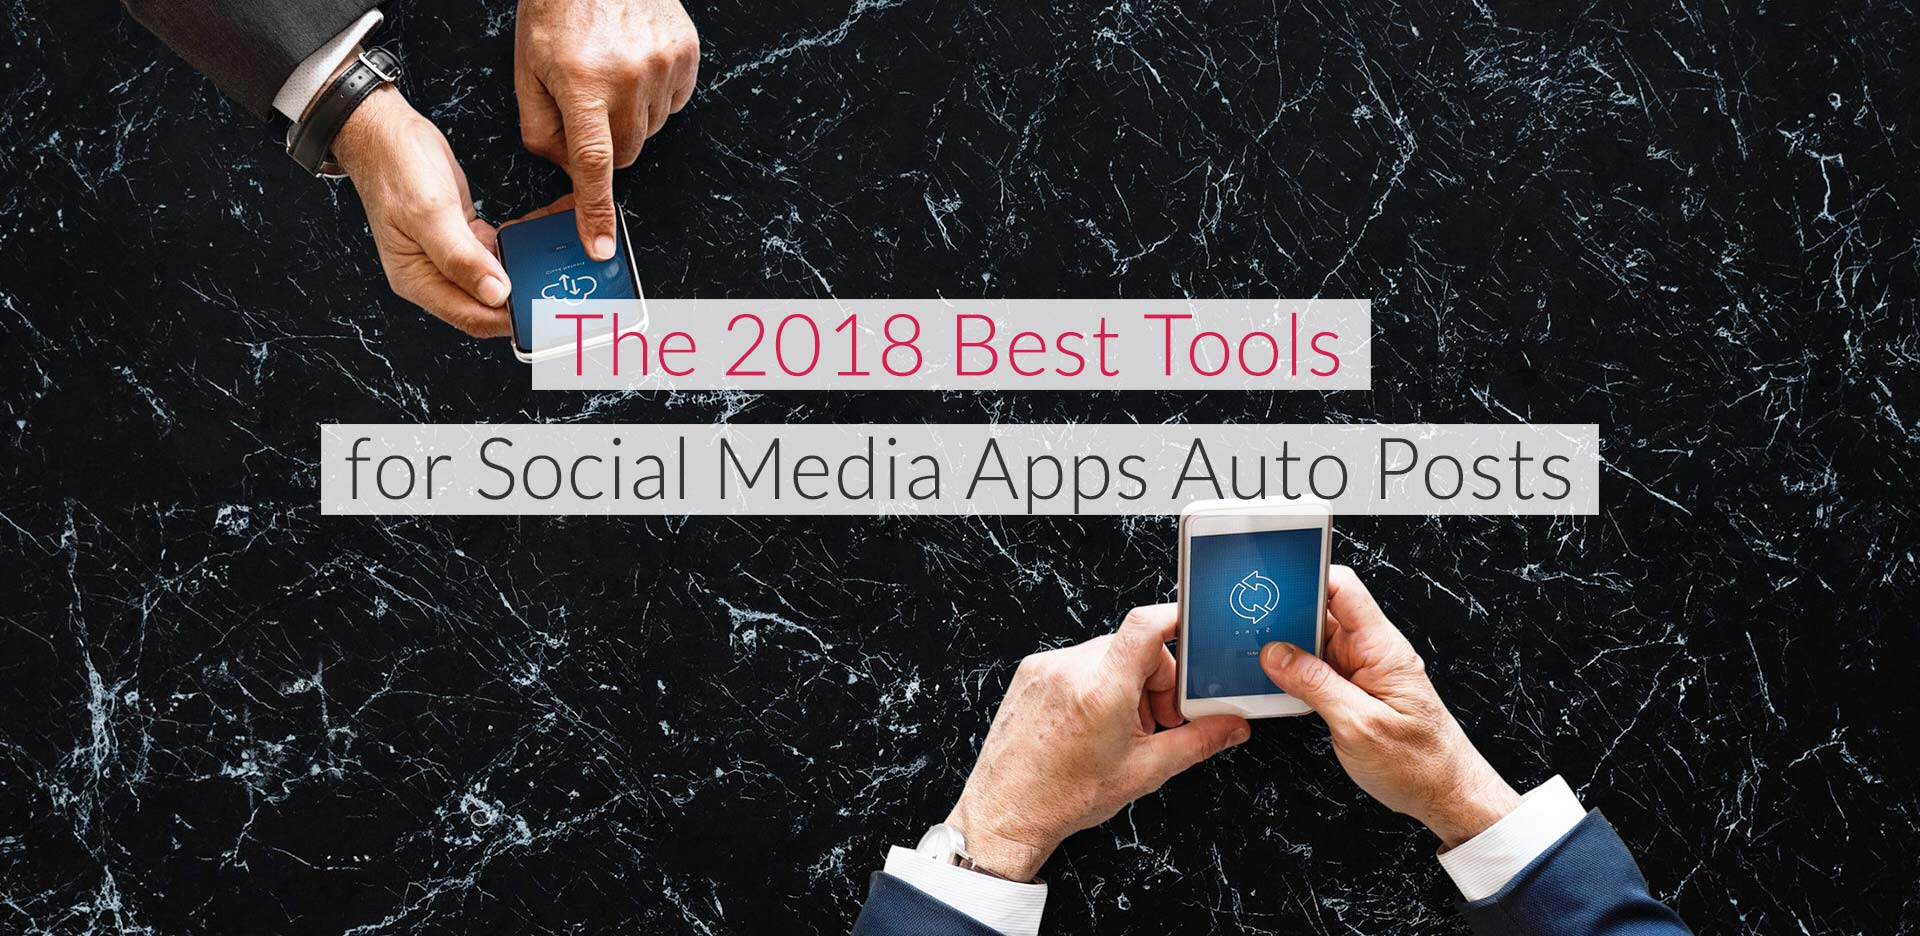 The 2018 Best Tools for Social Media Apps Auto Posts | Mentionlytics